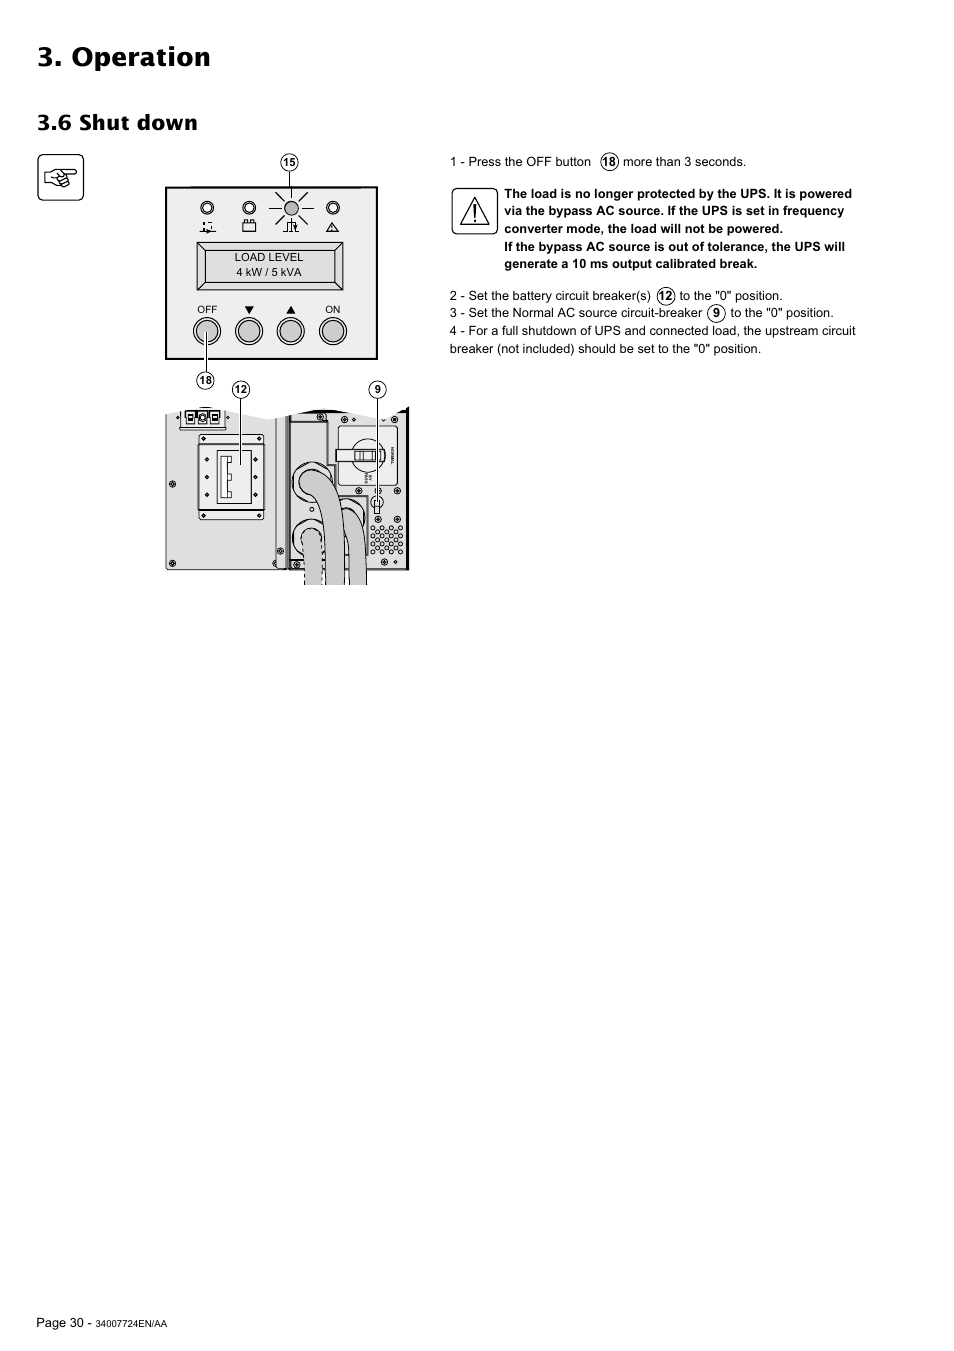 Operation 6 Shut Down Mge Ups Systems Comet Ex 11 Rt 31 User U P S Circuit Diagram Manual Page 30 38